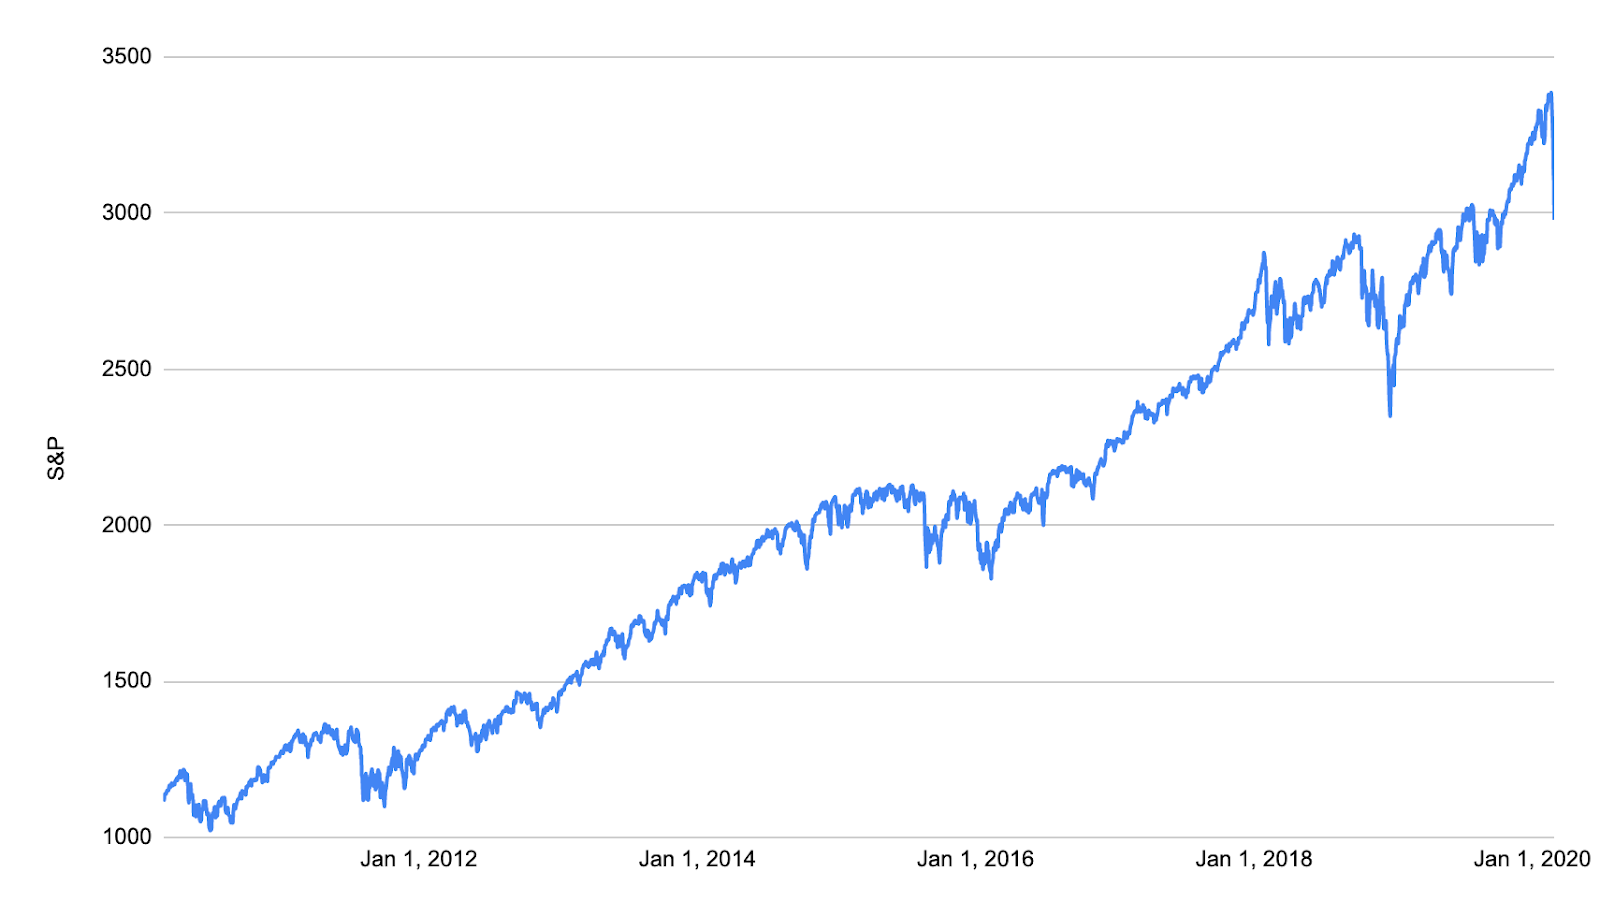 S&P 500 Over Last 10 Years (Feb 2010 - Feb 2020)